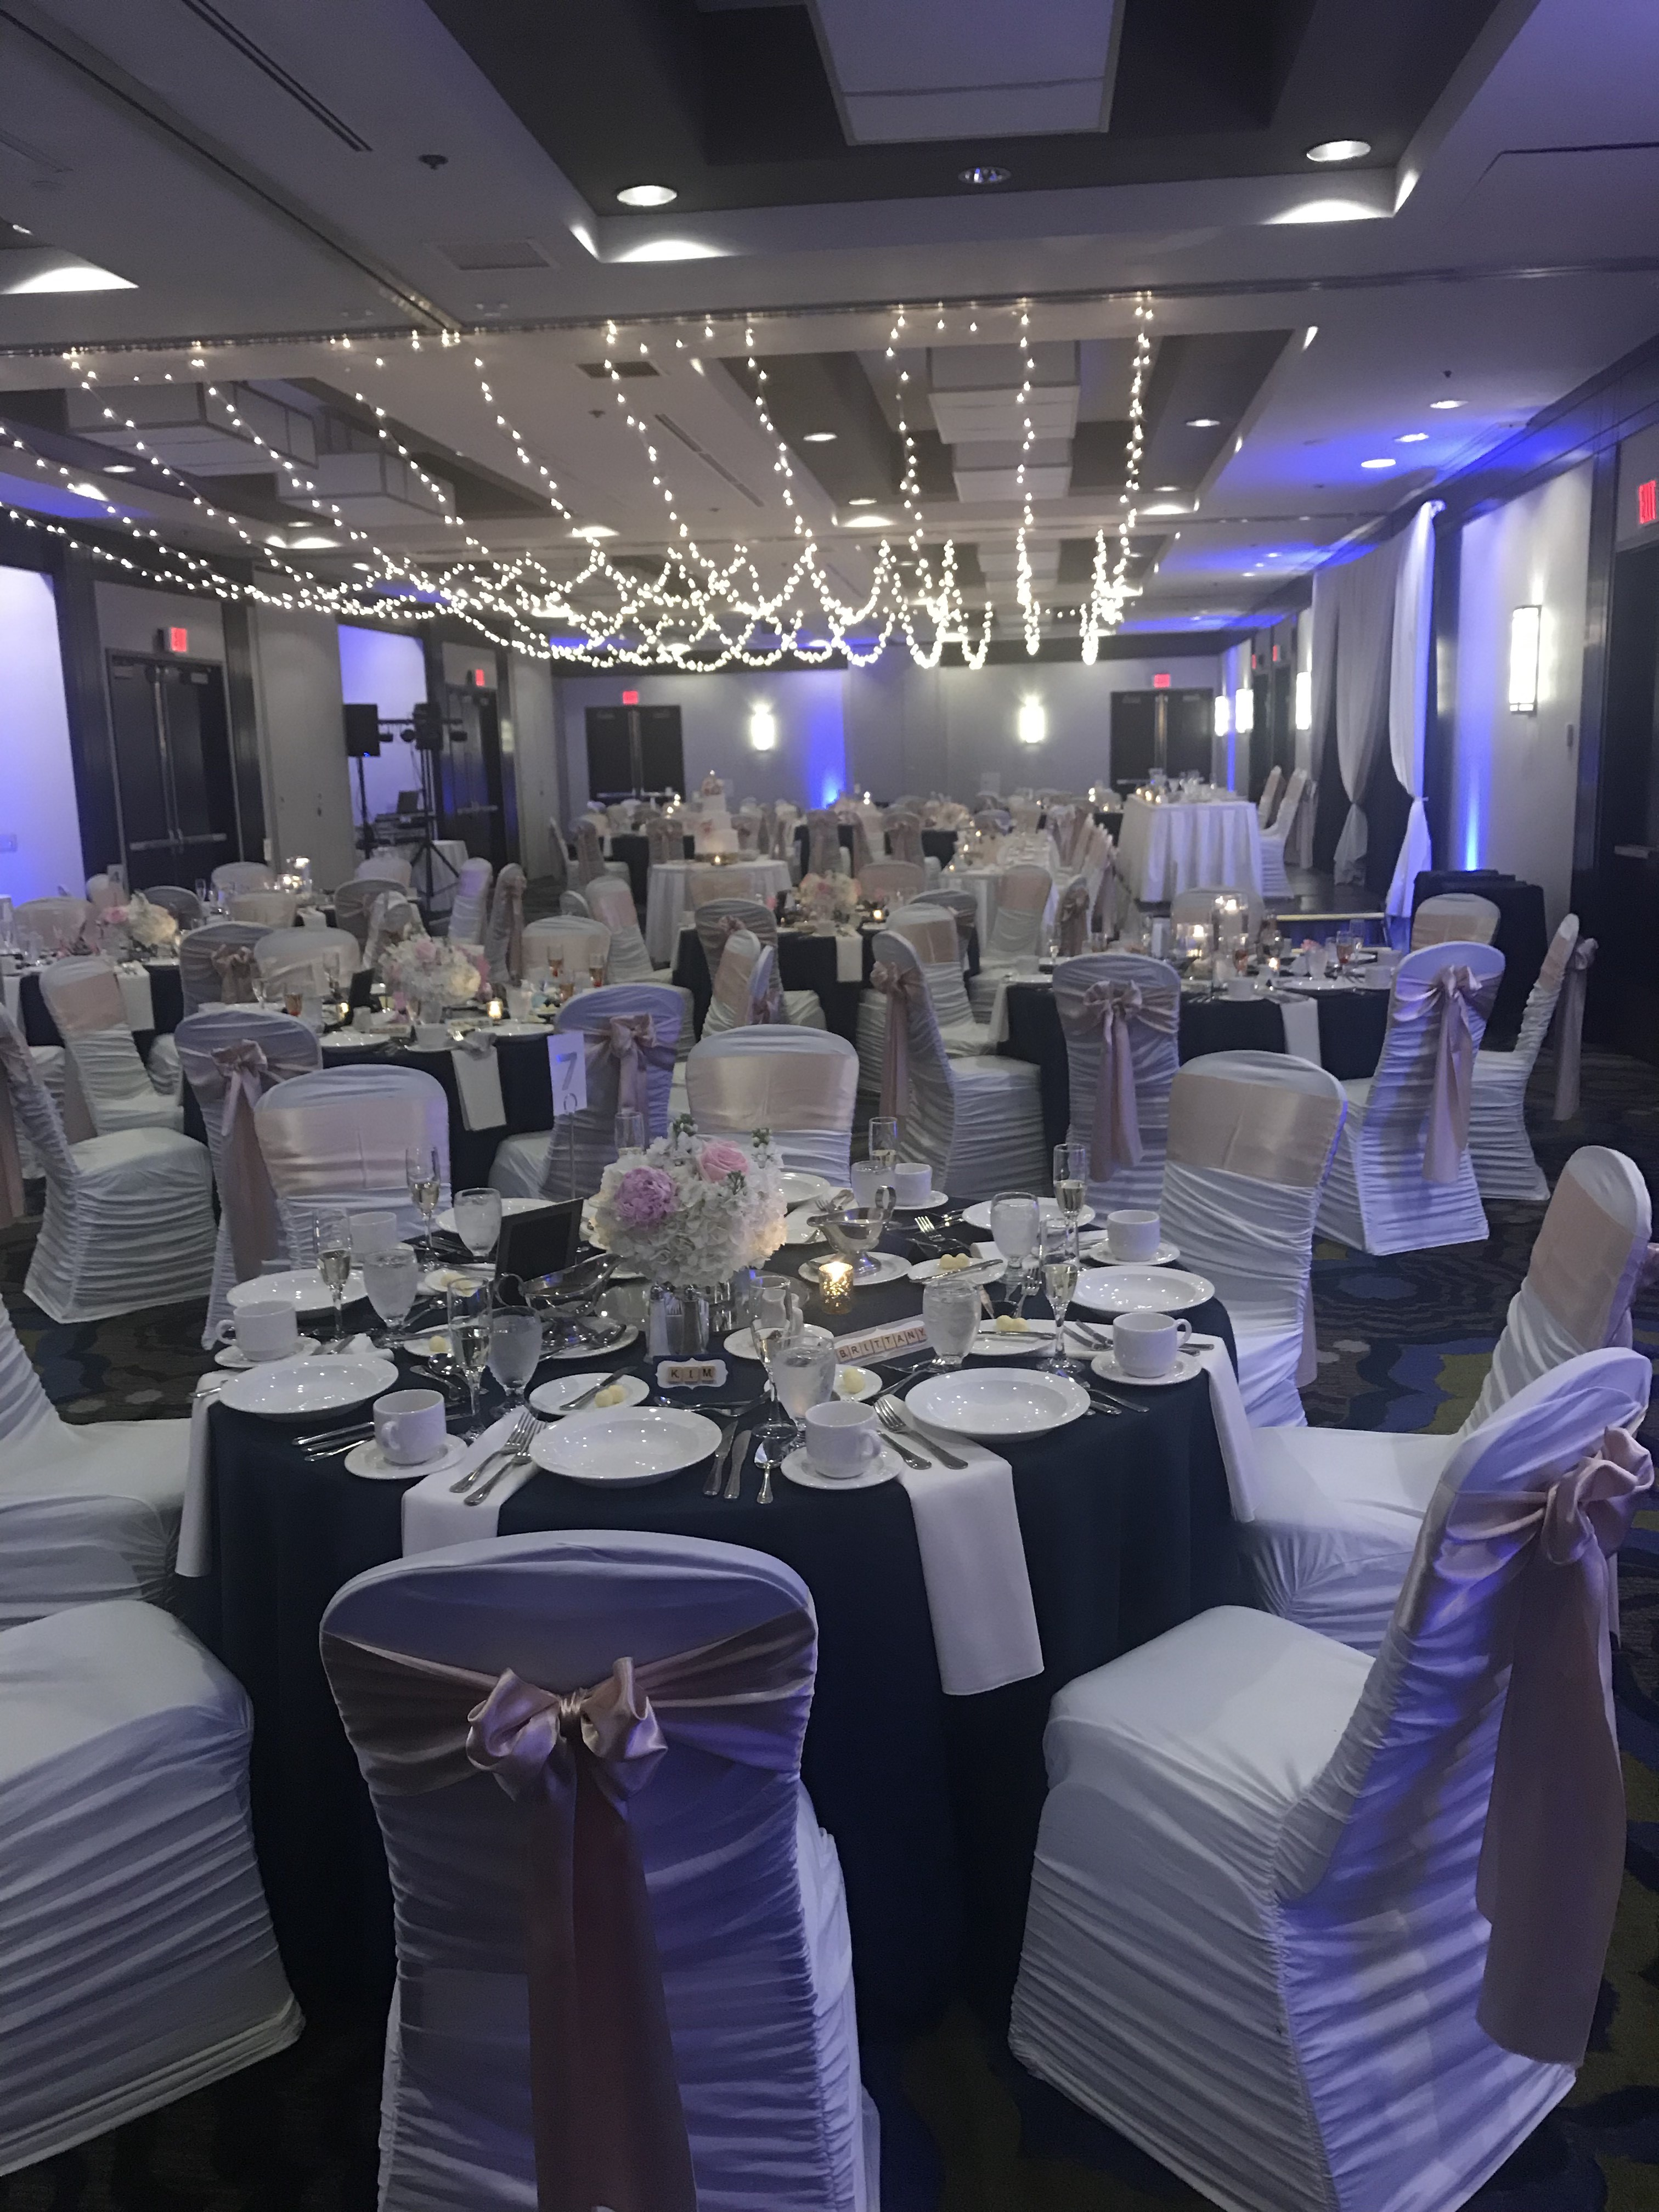 Wedding Venue Event Space with Stringed Lights